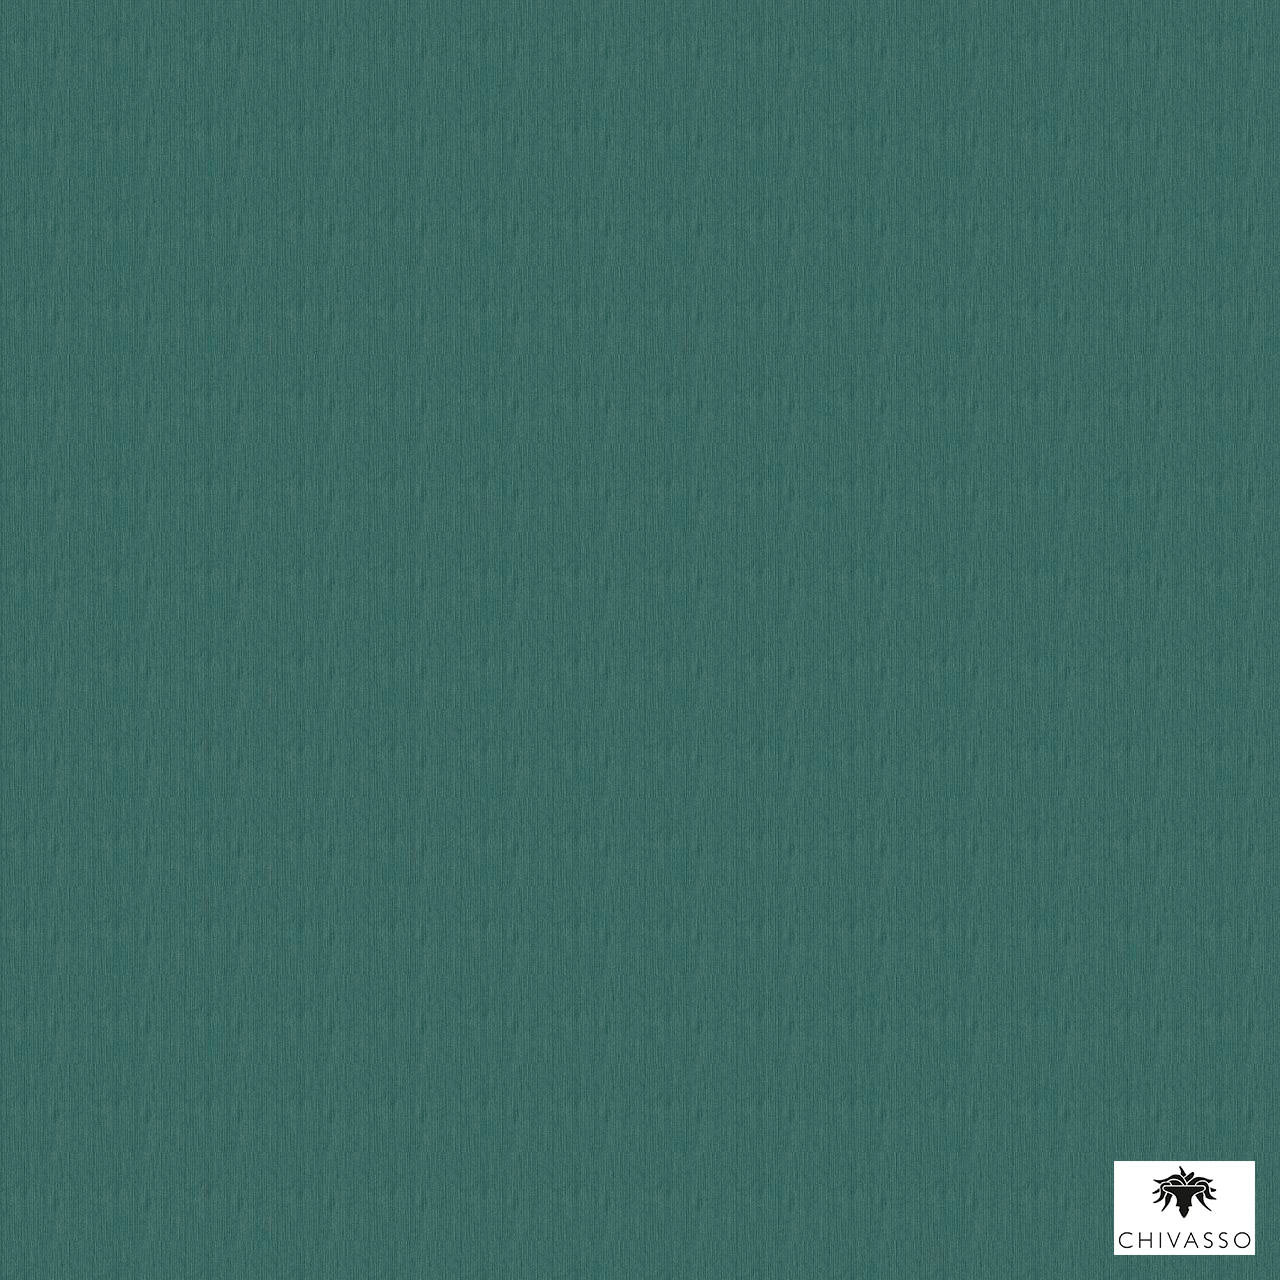 Chivasso - Colour Block - Ch9112-084  | Wallpaper, Wallcovering - Plain, Turquoise, Teal, Domestic Use